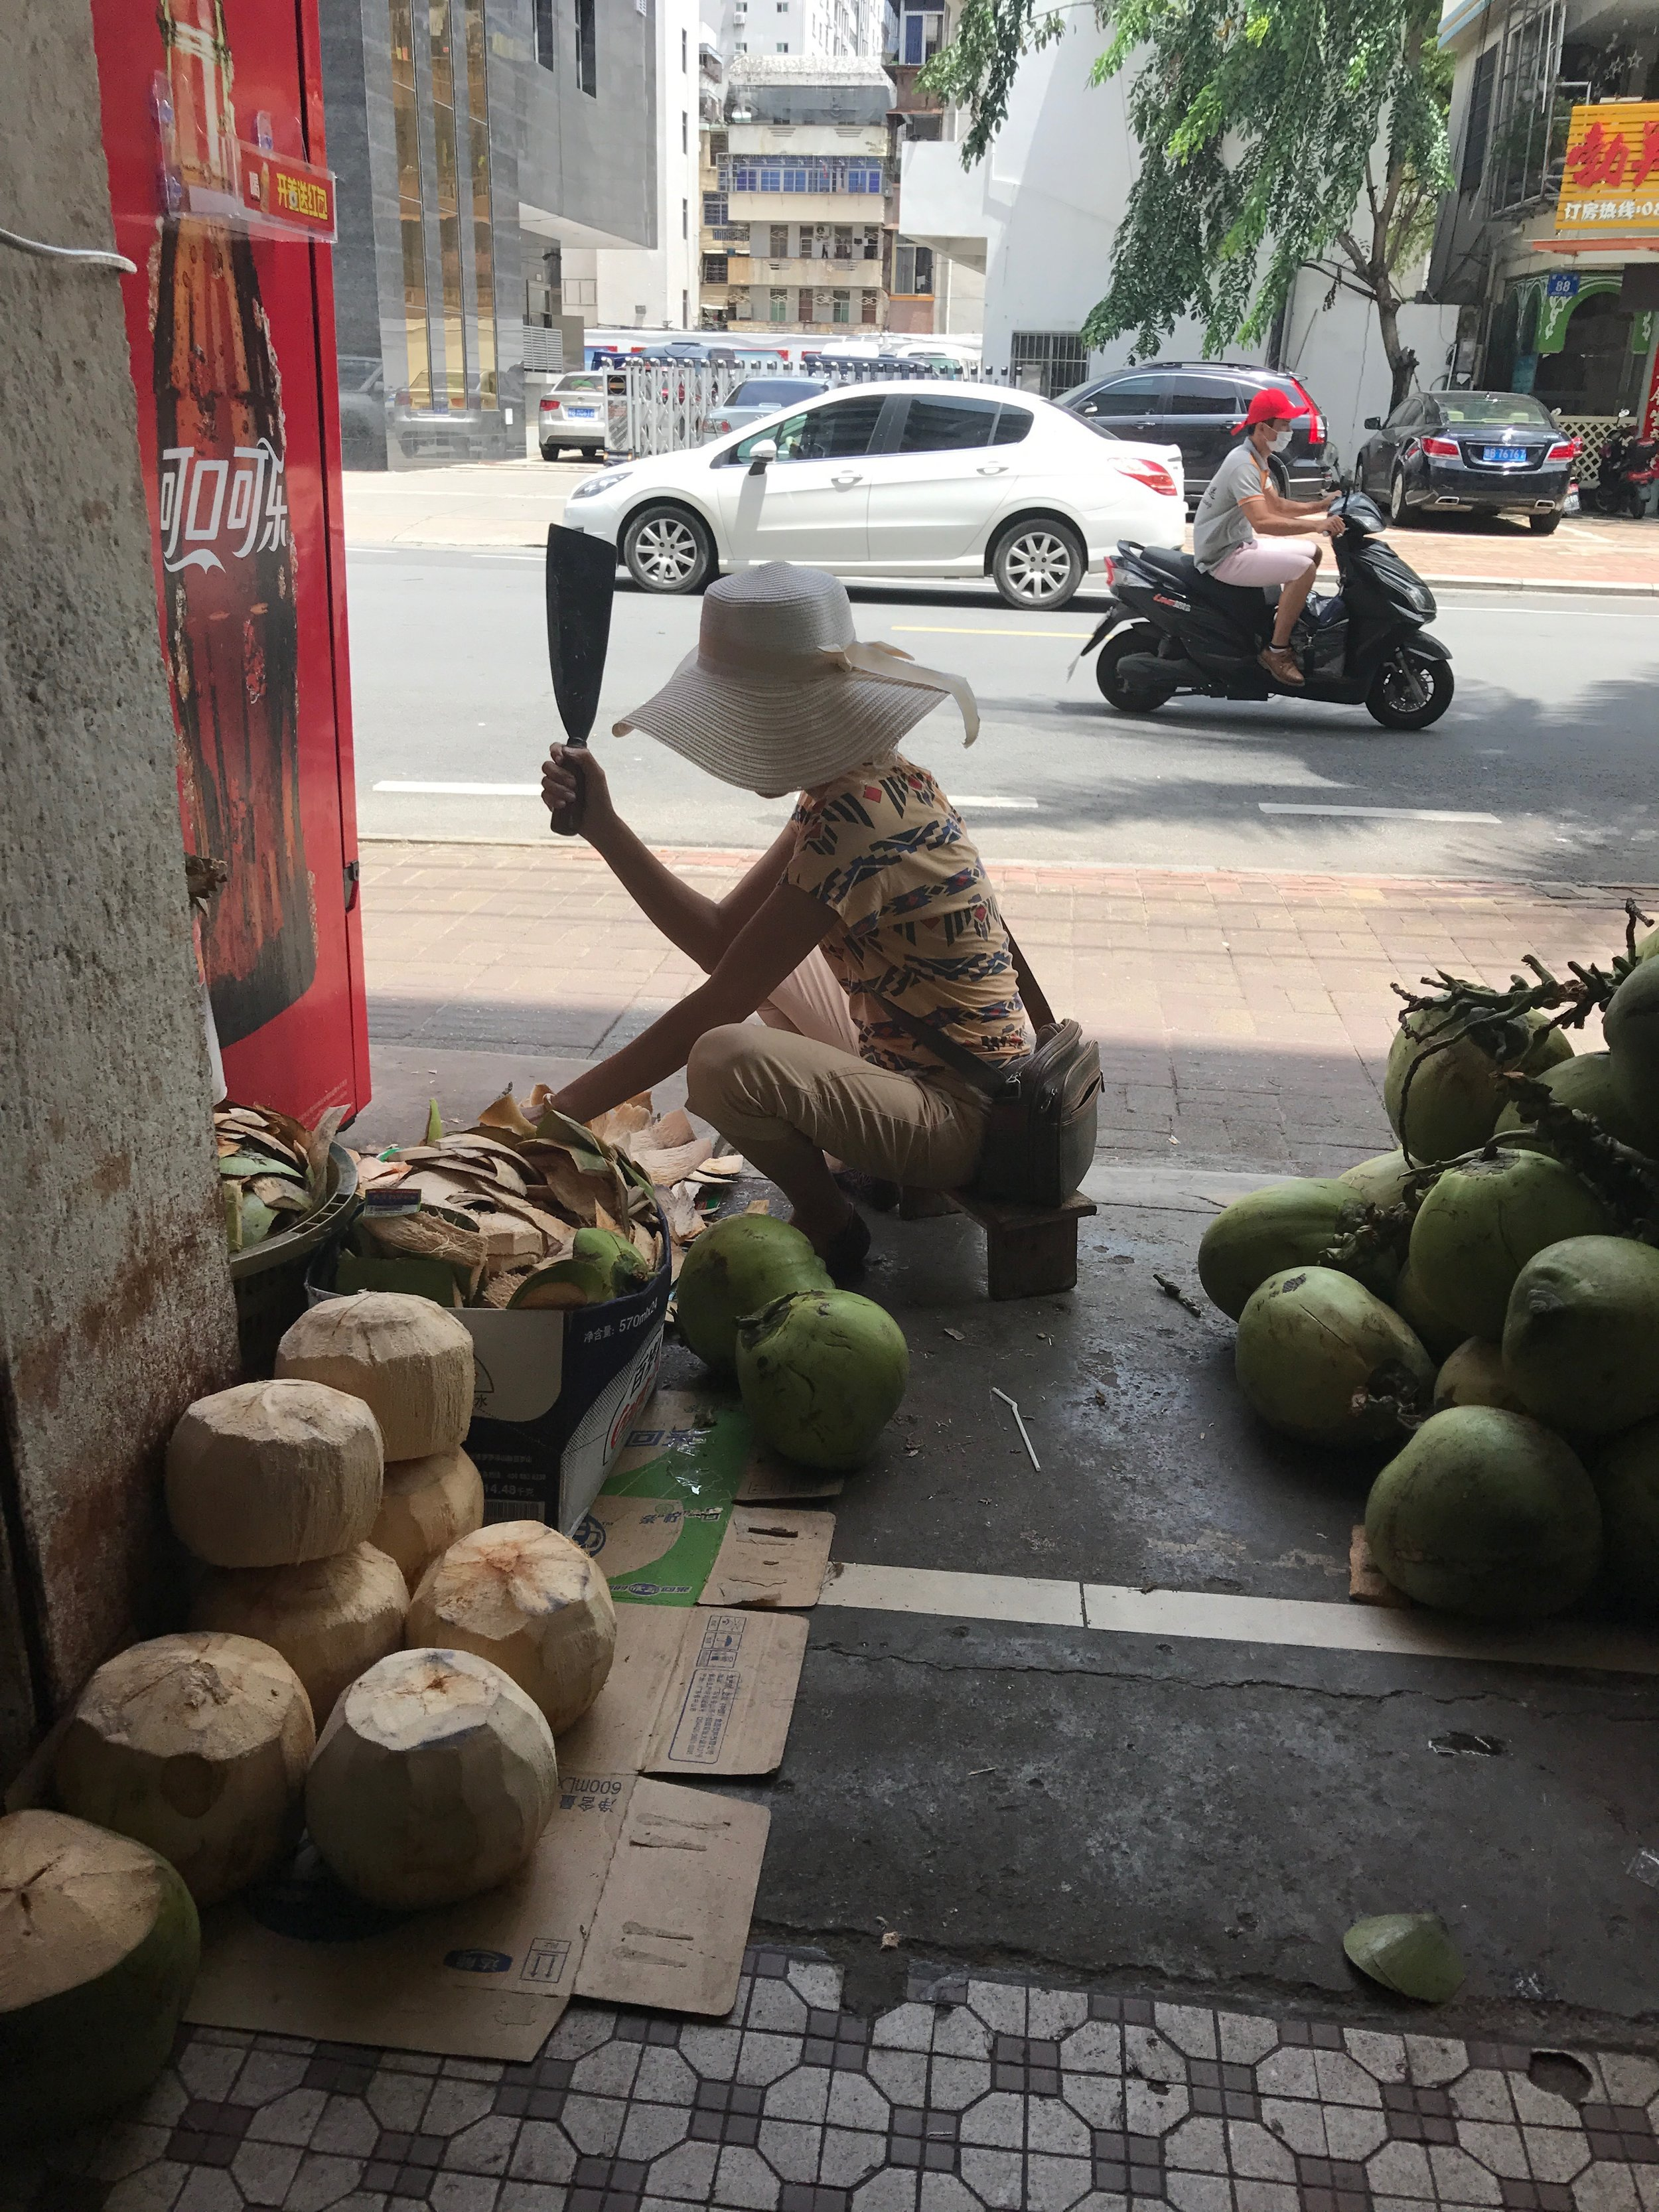 on the last day, bought a coconut for 8 kuai